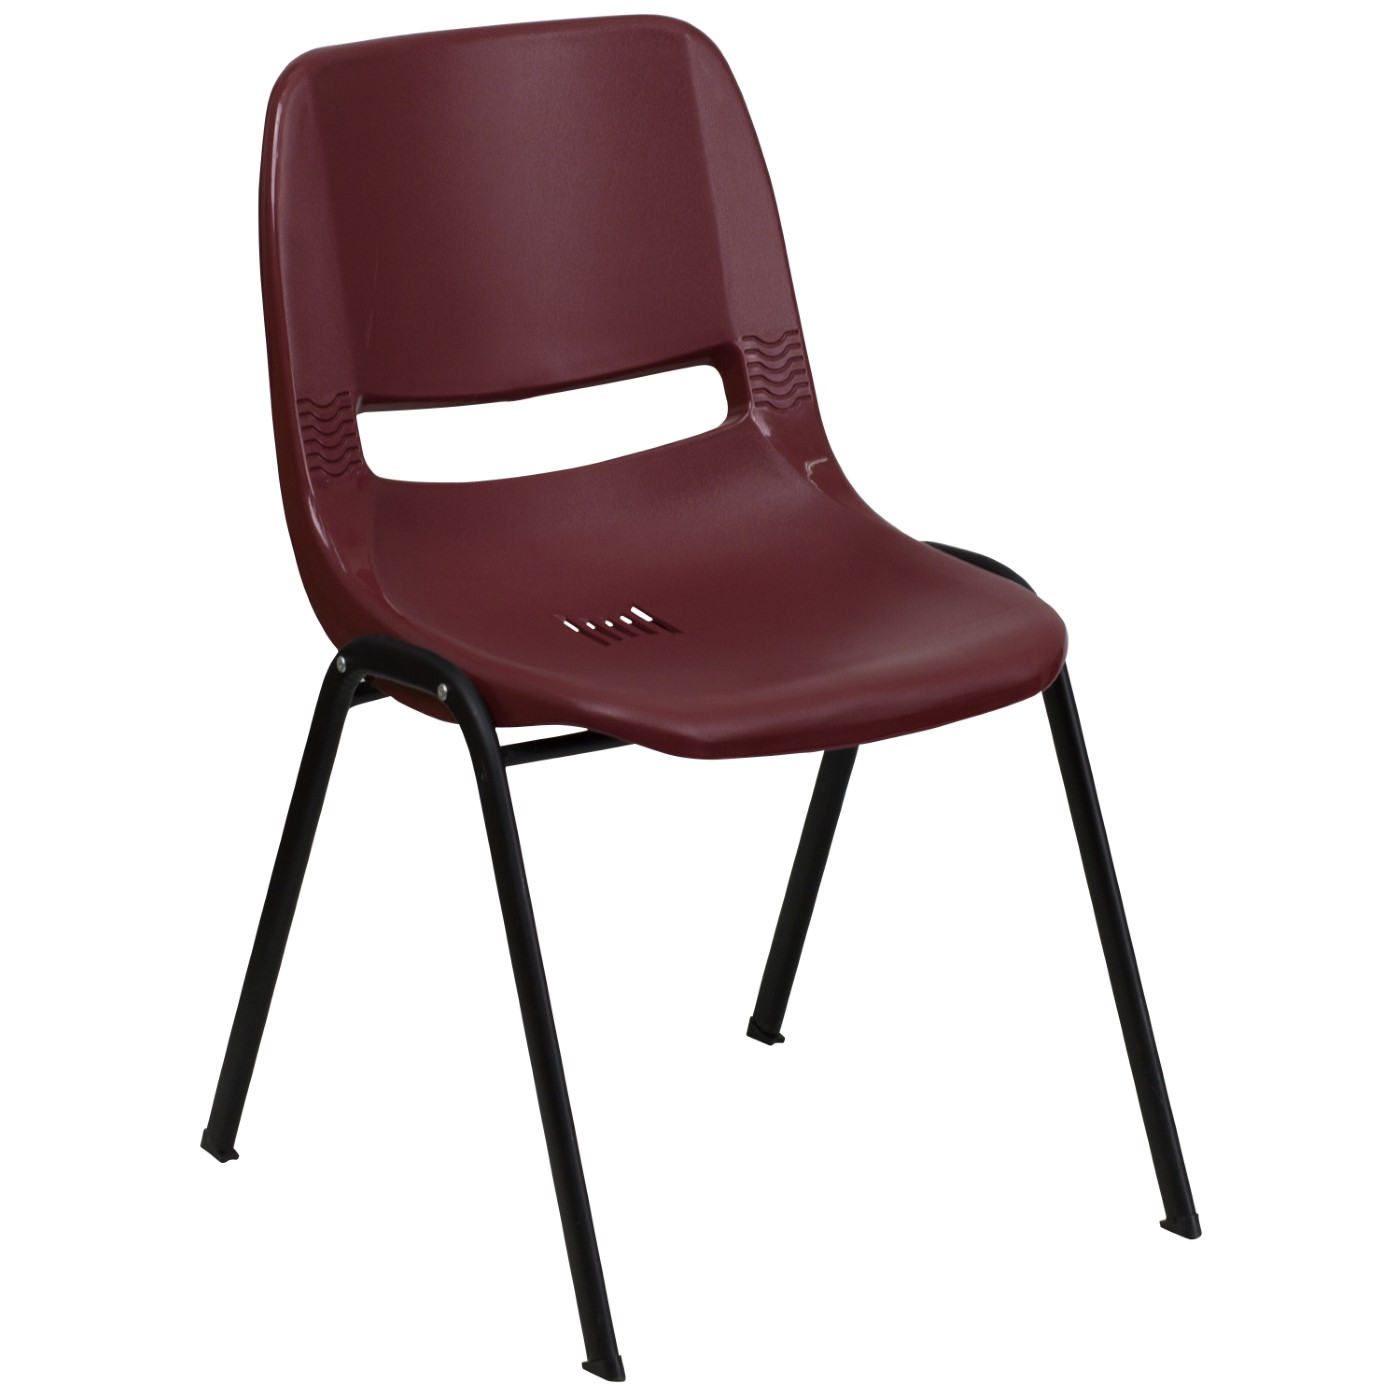 TOUGH ENOUGH Series 880 lb. Capacity Burgundy Ergonomic Shell Stack Chair with Black Frame